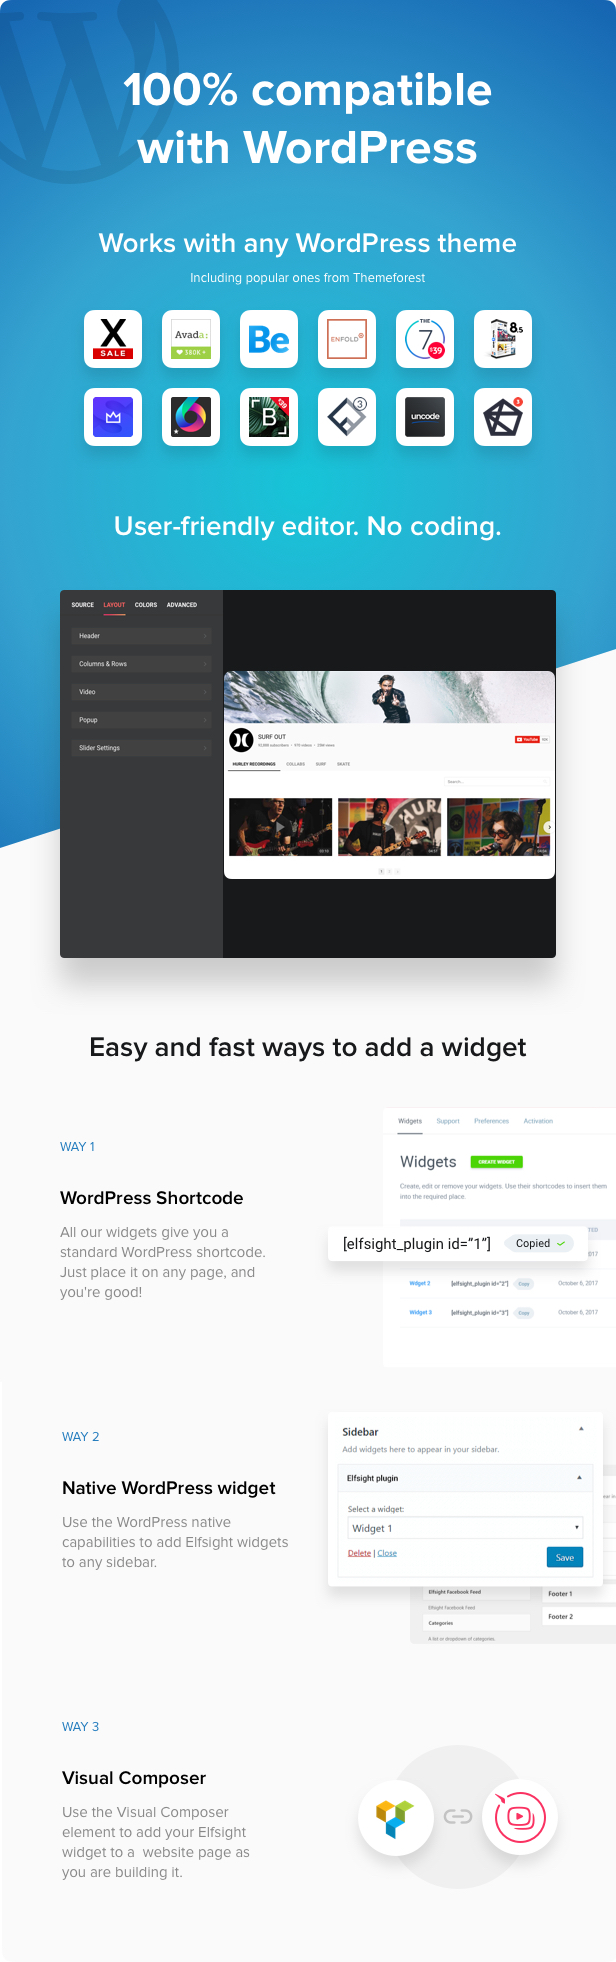 elfsight-youtube-gallery-description-wordpress-support.jpg